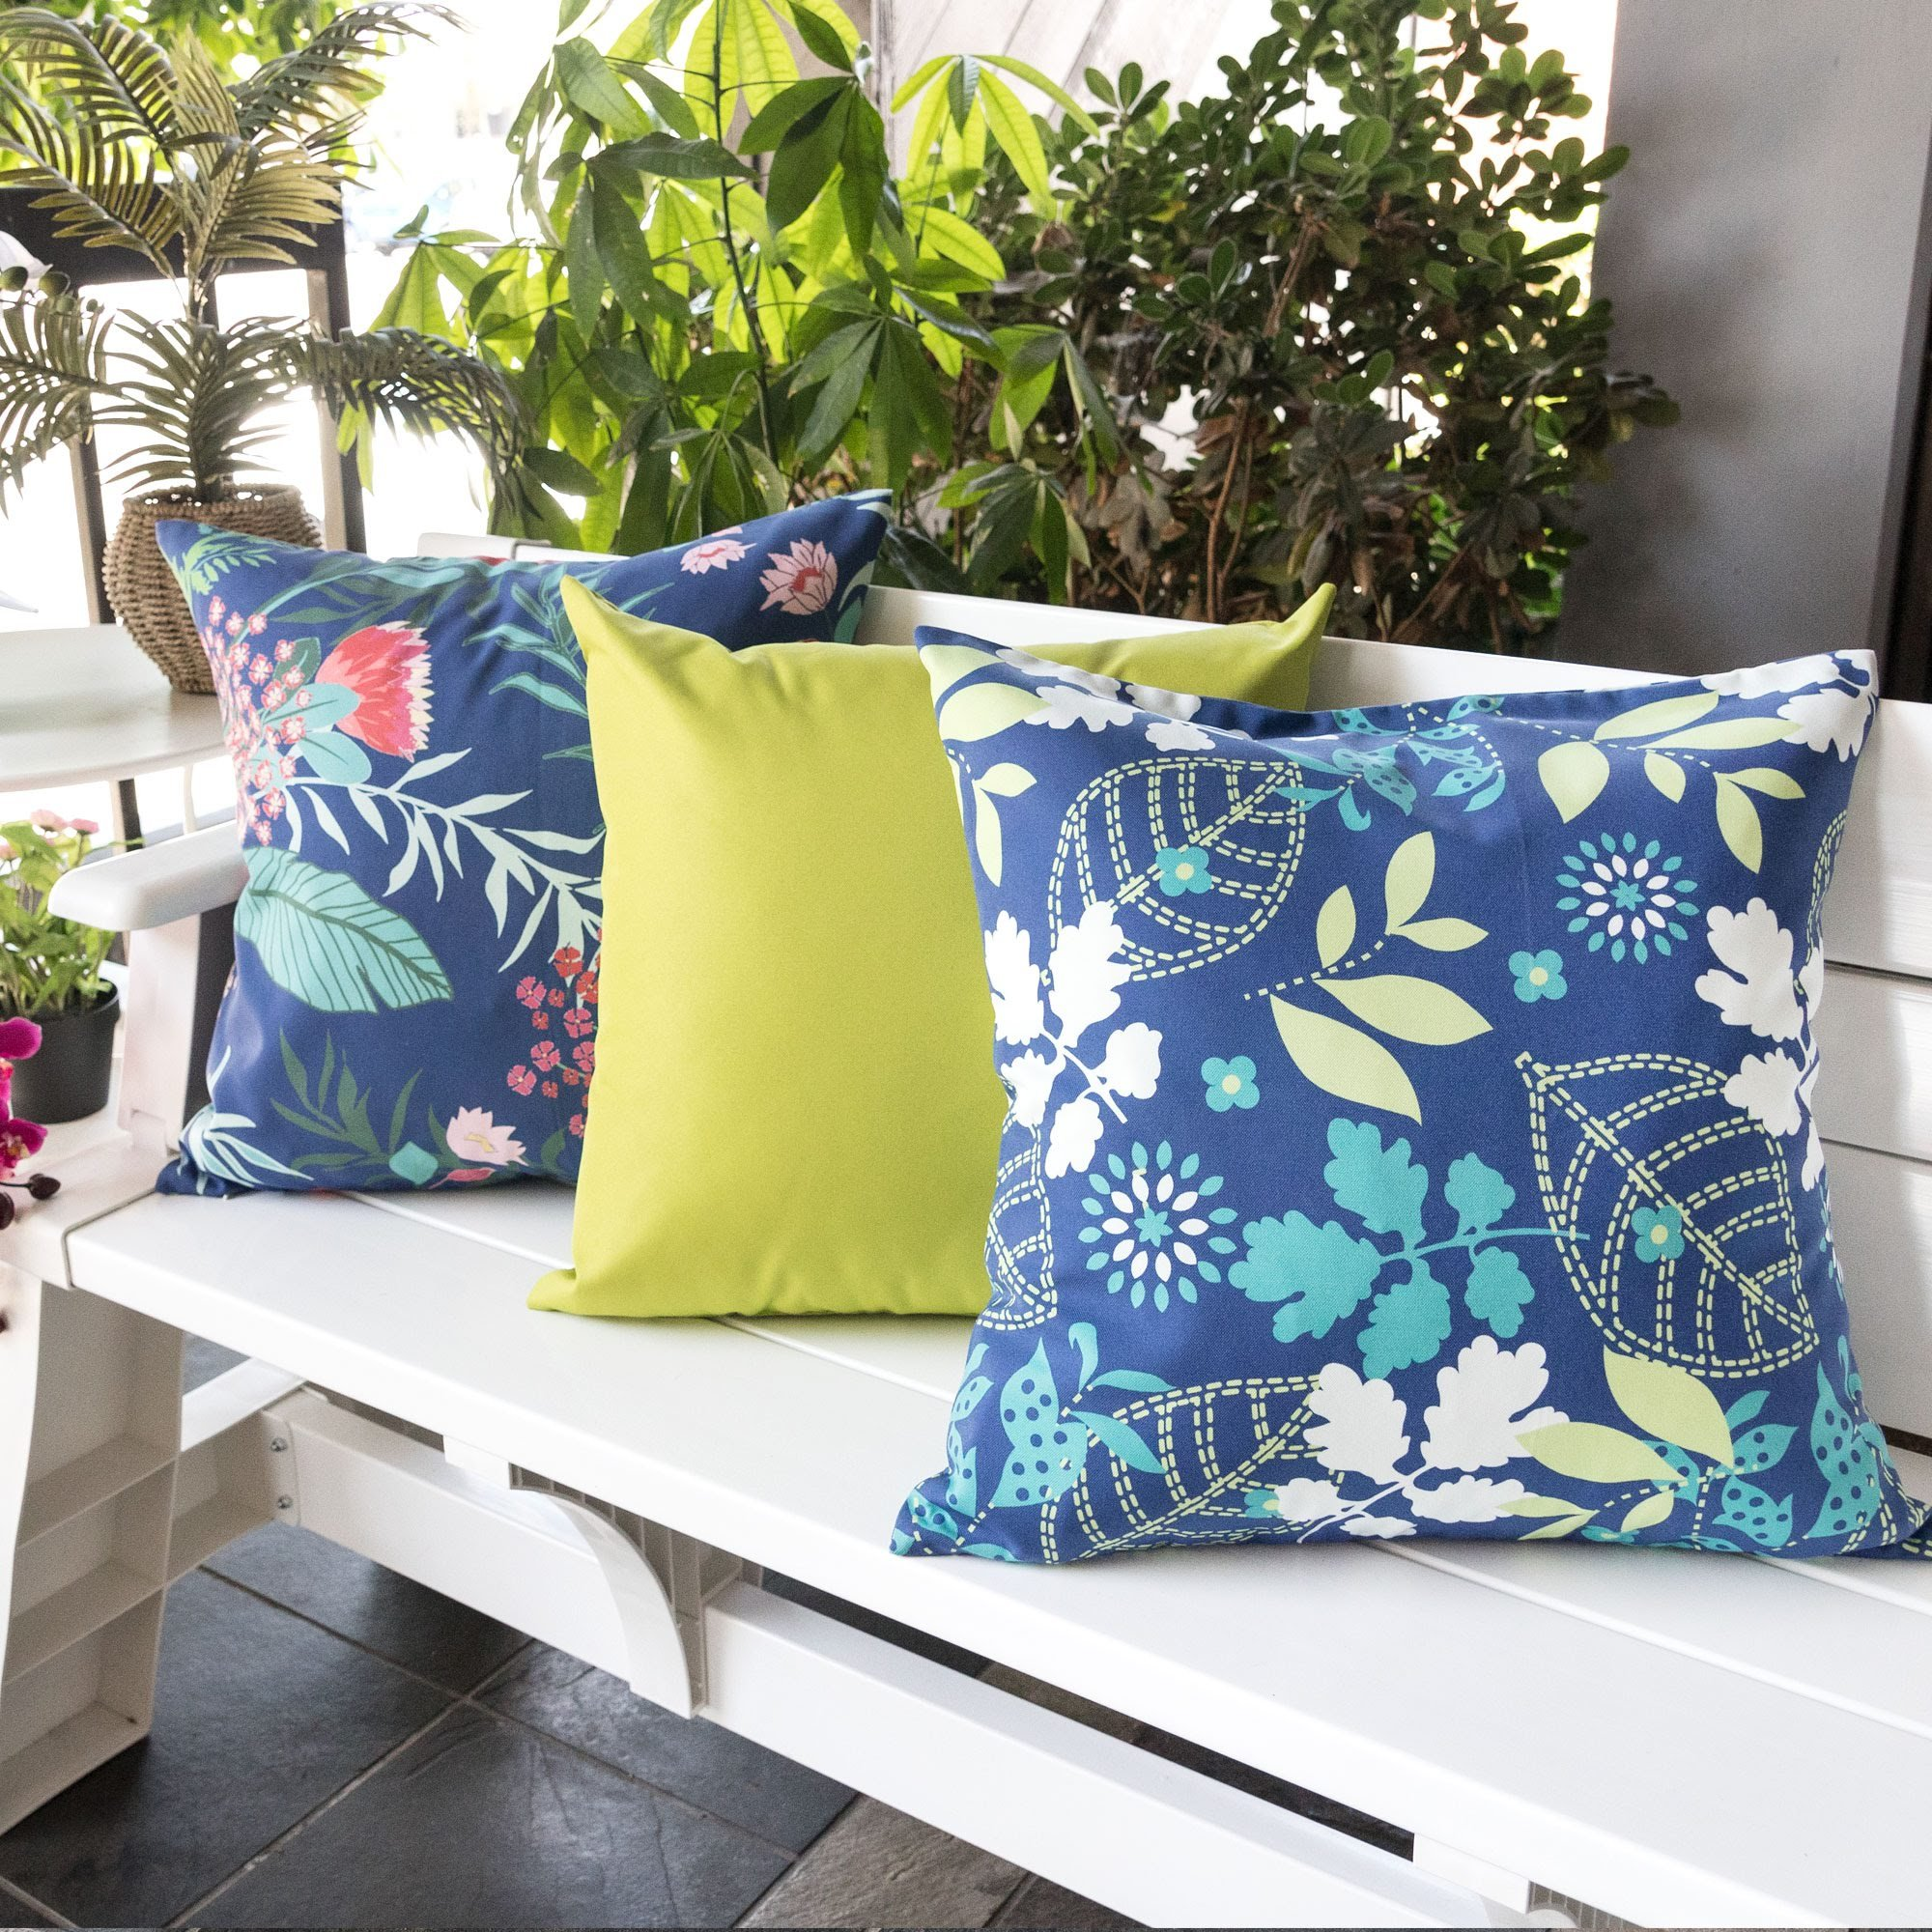 Homey Cozy Outdoor Accent Pillow Cover,Tropical Garden Large Water/UV/Stain-Resistance Decorative Replacement Cushion Cover 20x20, Cover Only